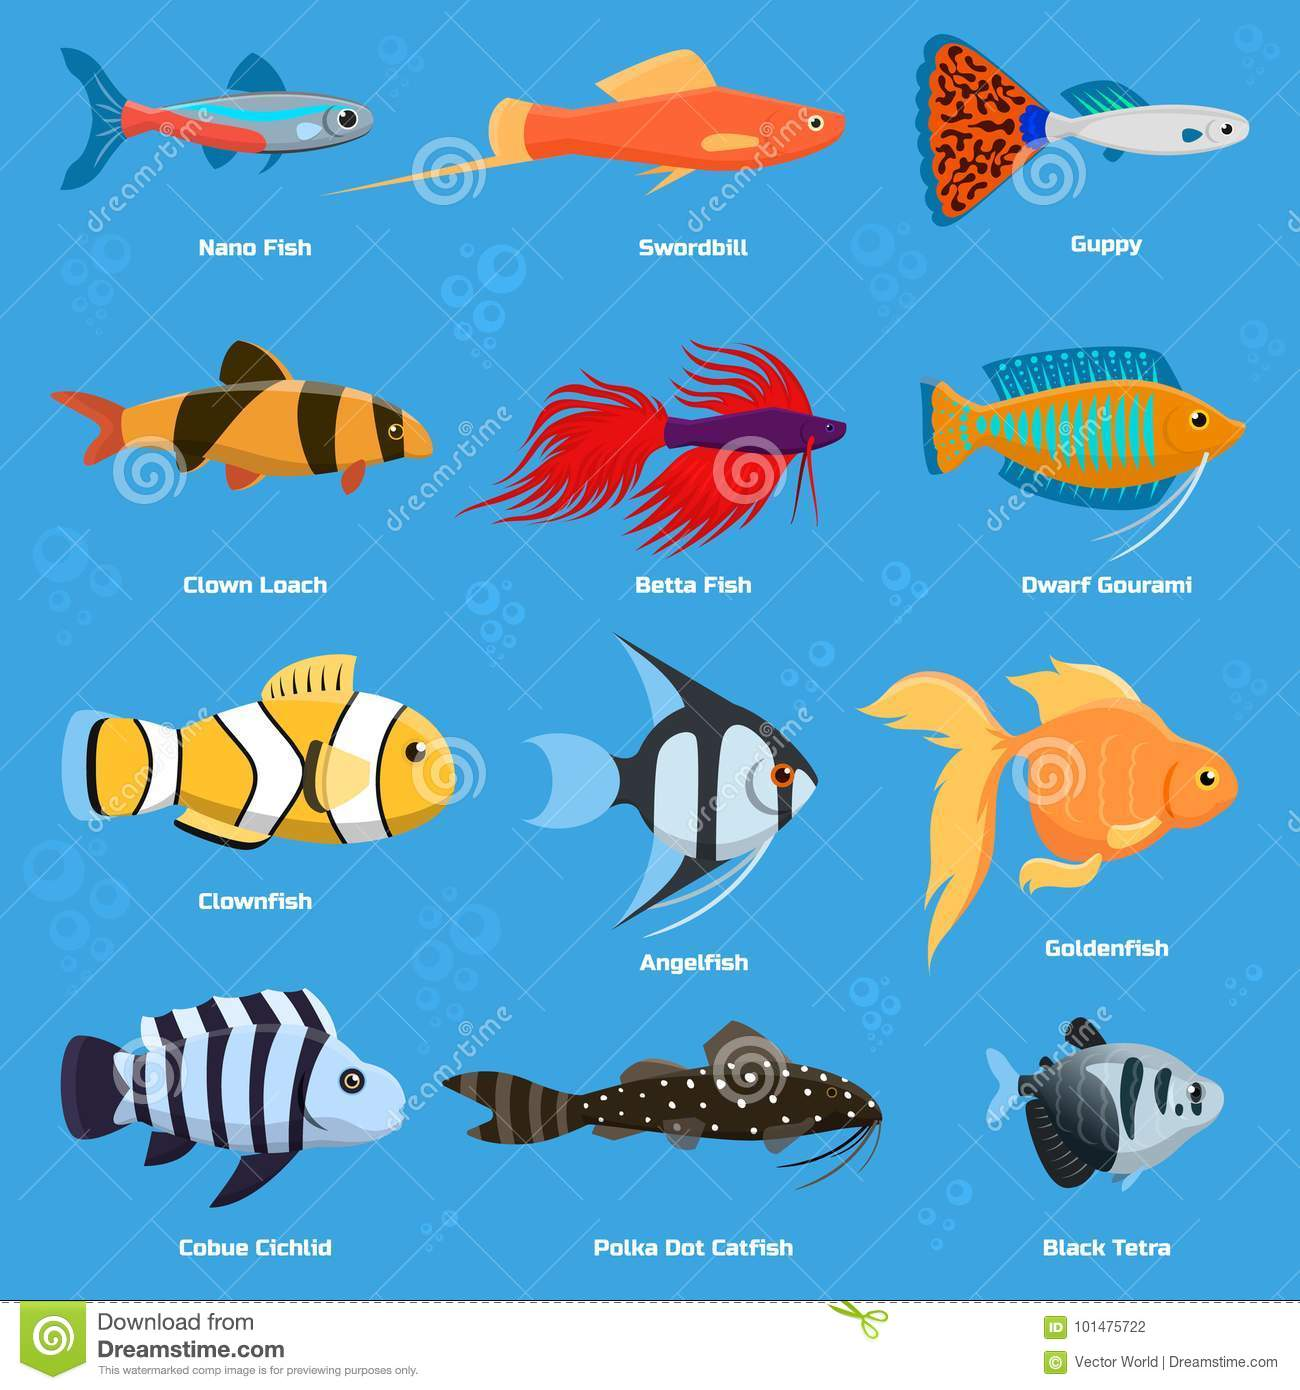 aquarium and ocean fish breeds underwater bowl tropical aquatic